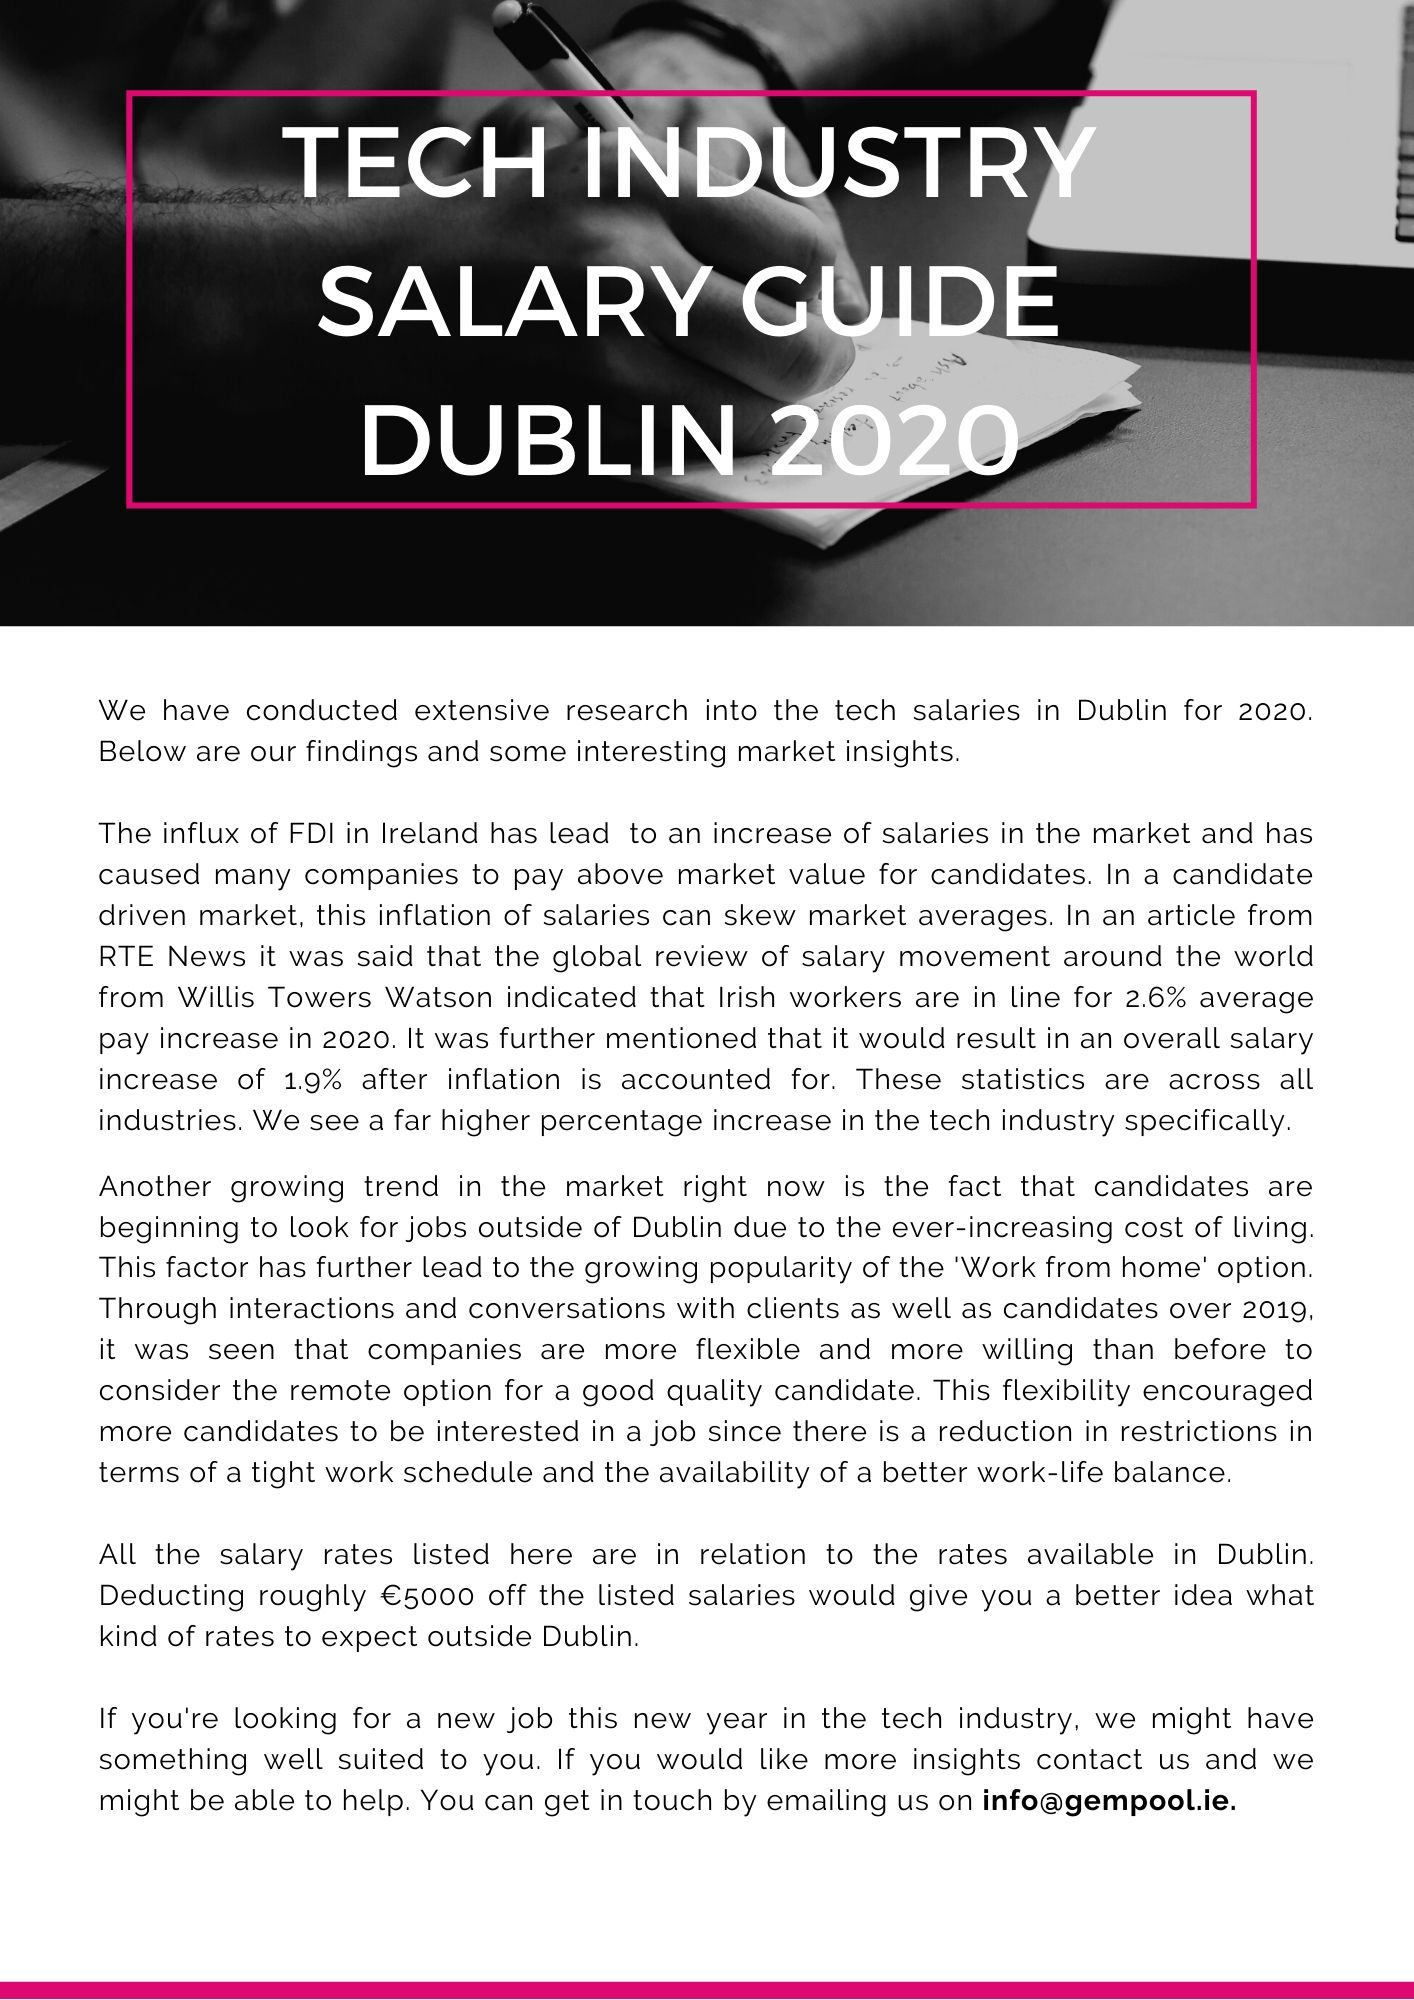 Tech Industry Salary Guide Dublin 2020 by GemPool